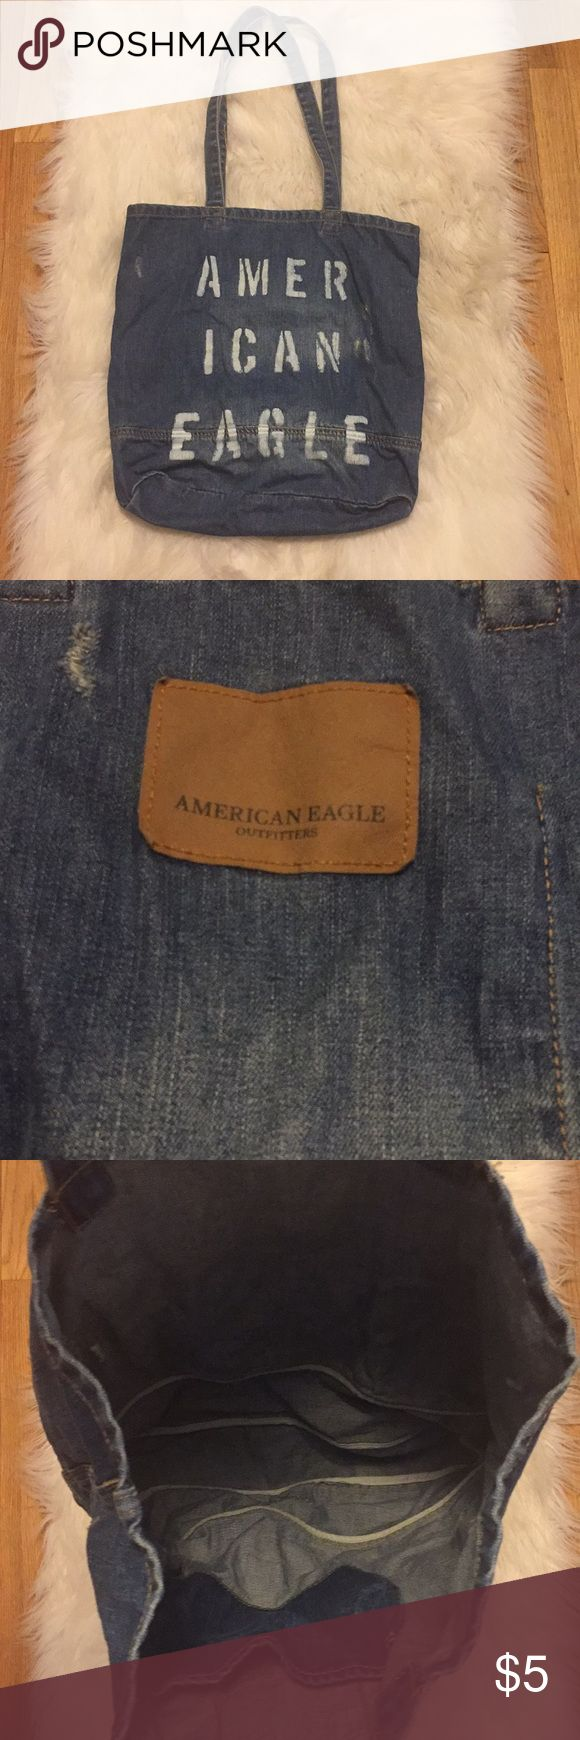 American Eagle denim tote bag American Eagle denim tote bag! Used once- brand new condition! American Eagle Outfitters Bags Totes